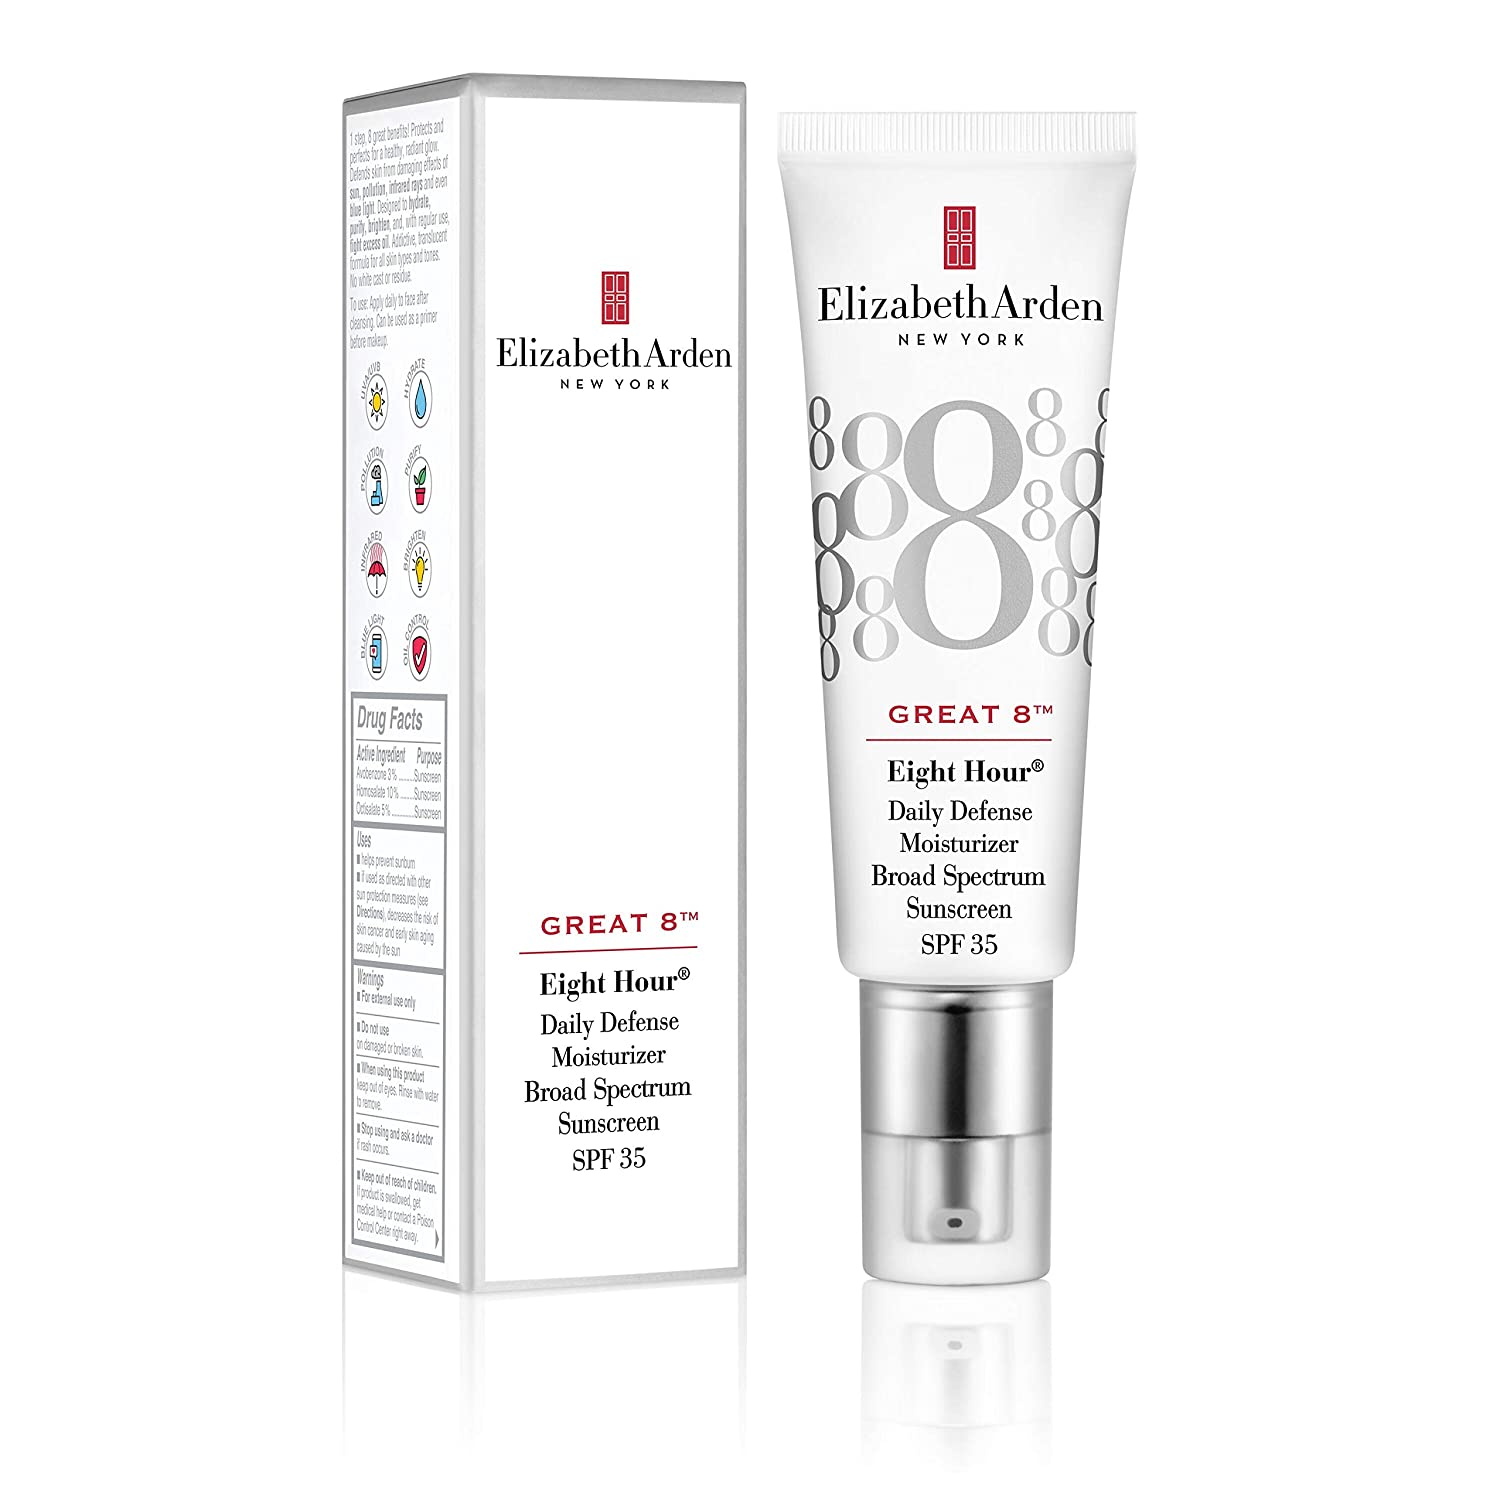 Elizabeth Arden Great 8 Daily Defense Facial Moisturizer Broad Spectrum Sunscreen SPF 35, 1.5 Oz.